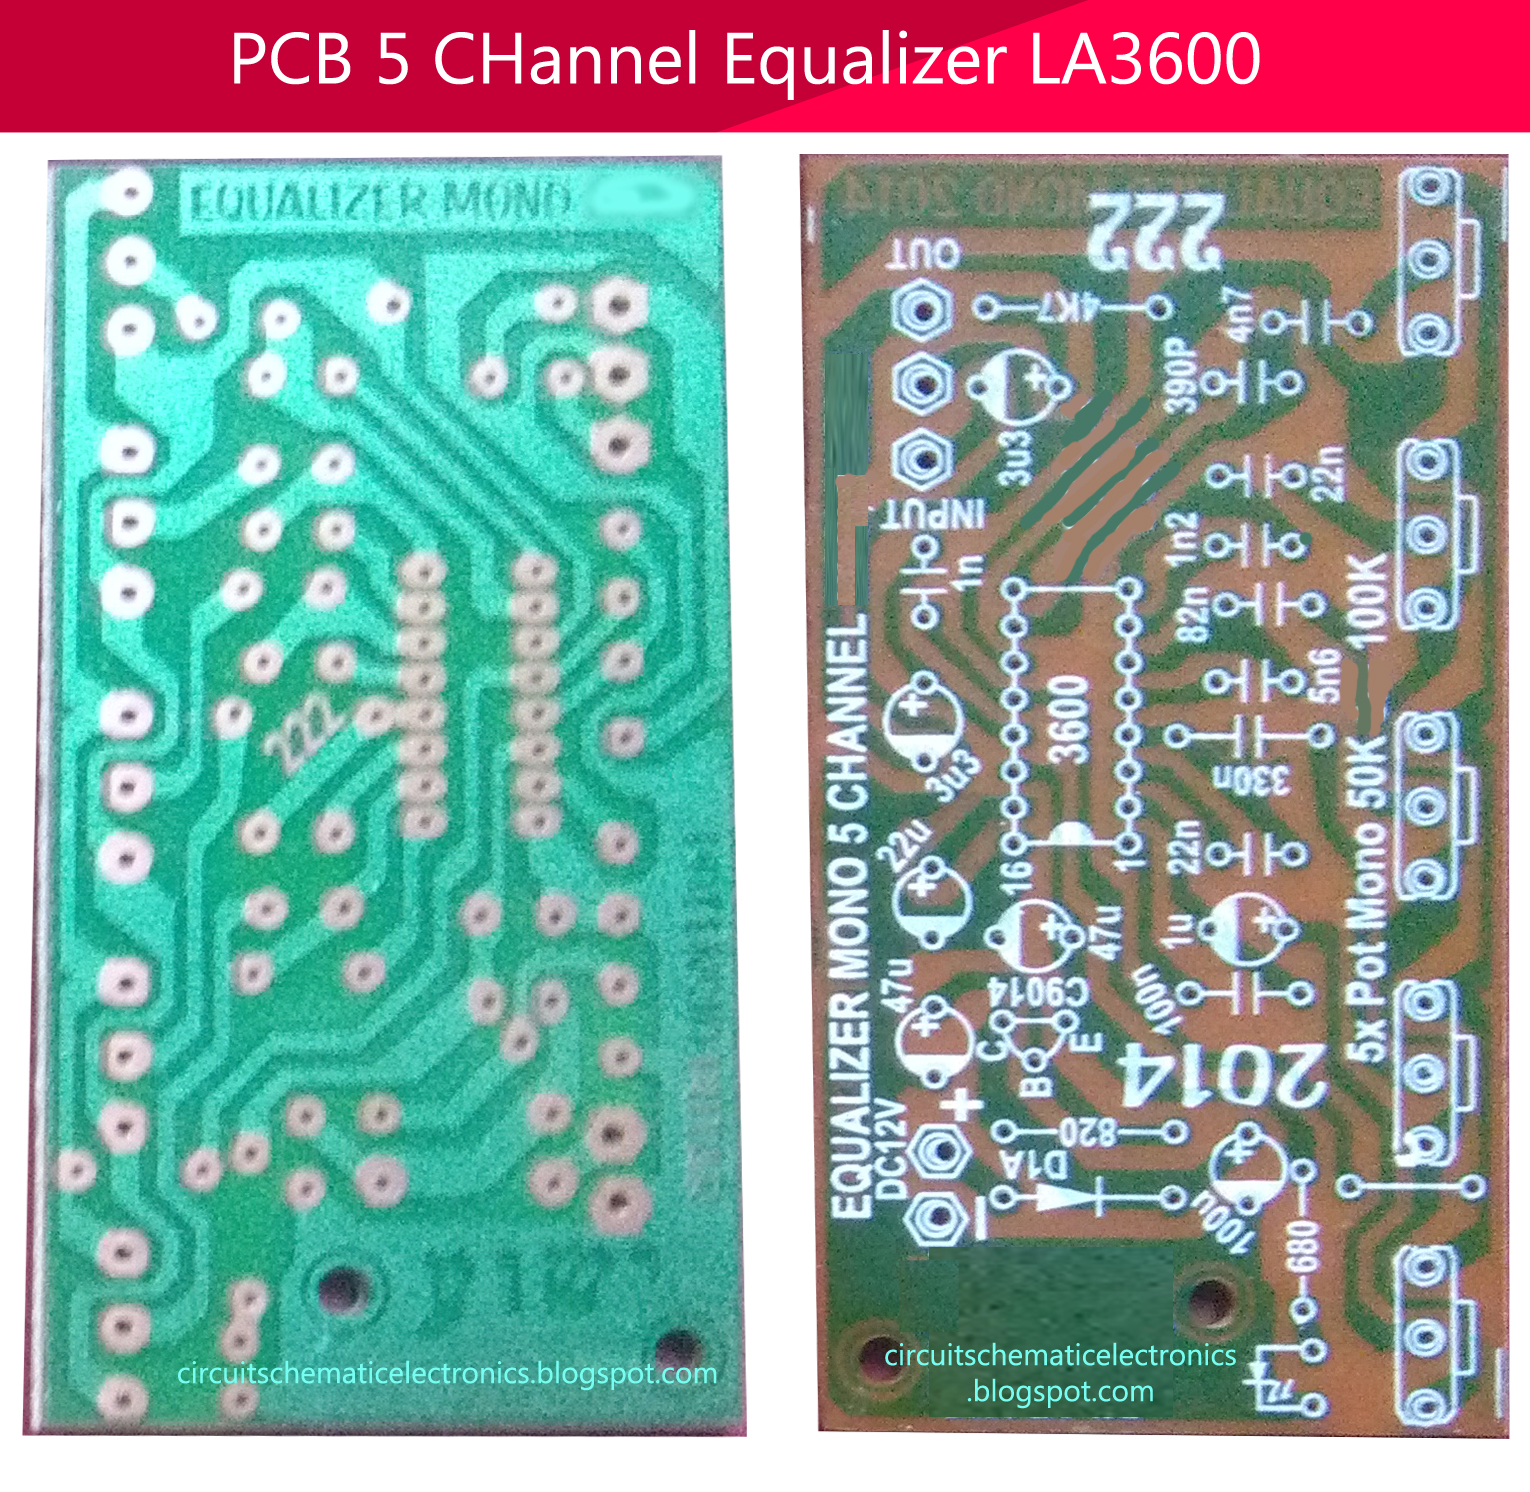 Newyork Gps Channel Audio Mixer Circuit Using Lm3900 Simple Schematic Diagram Circuitschematicelectronics Blogspot Com Pcb Design Layout